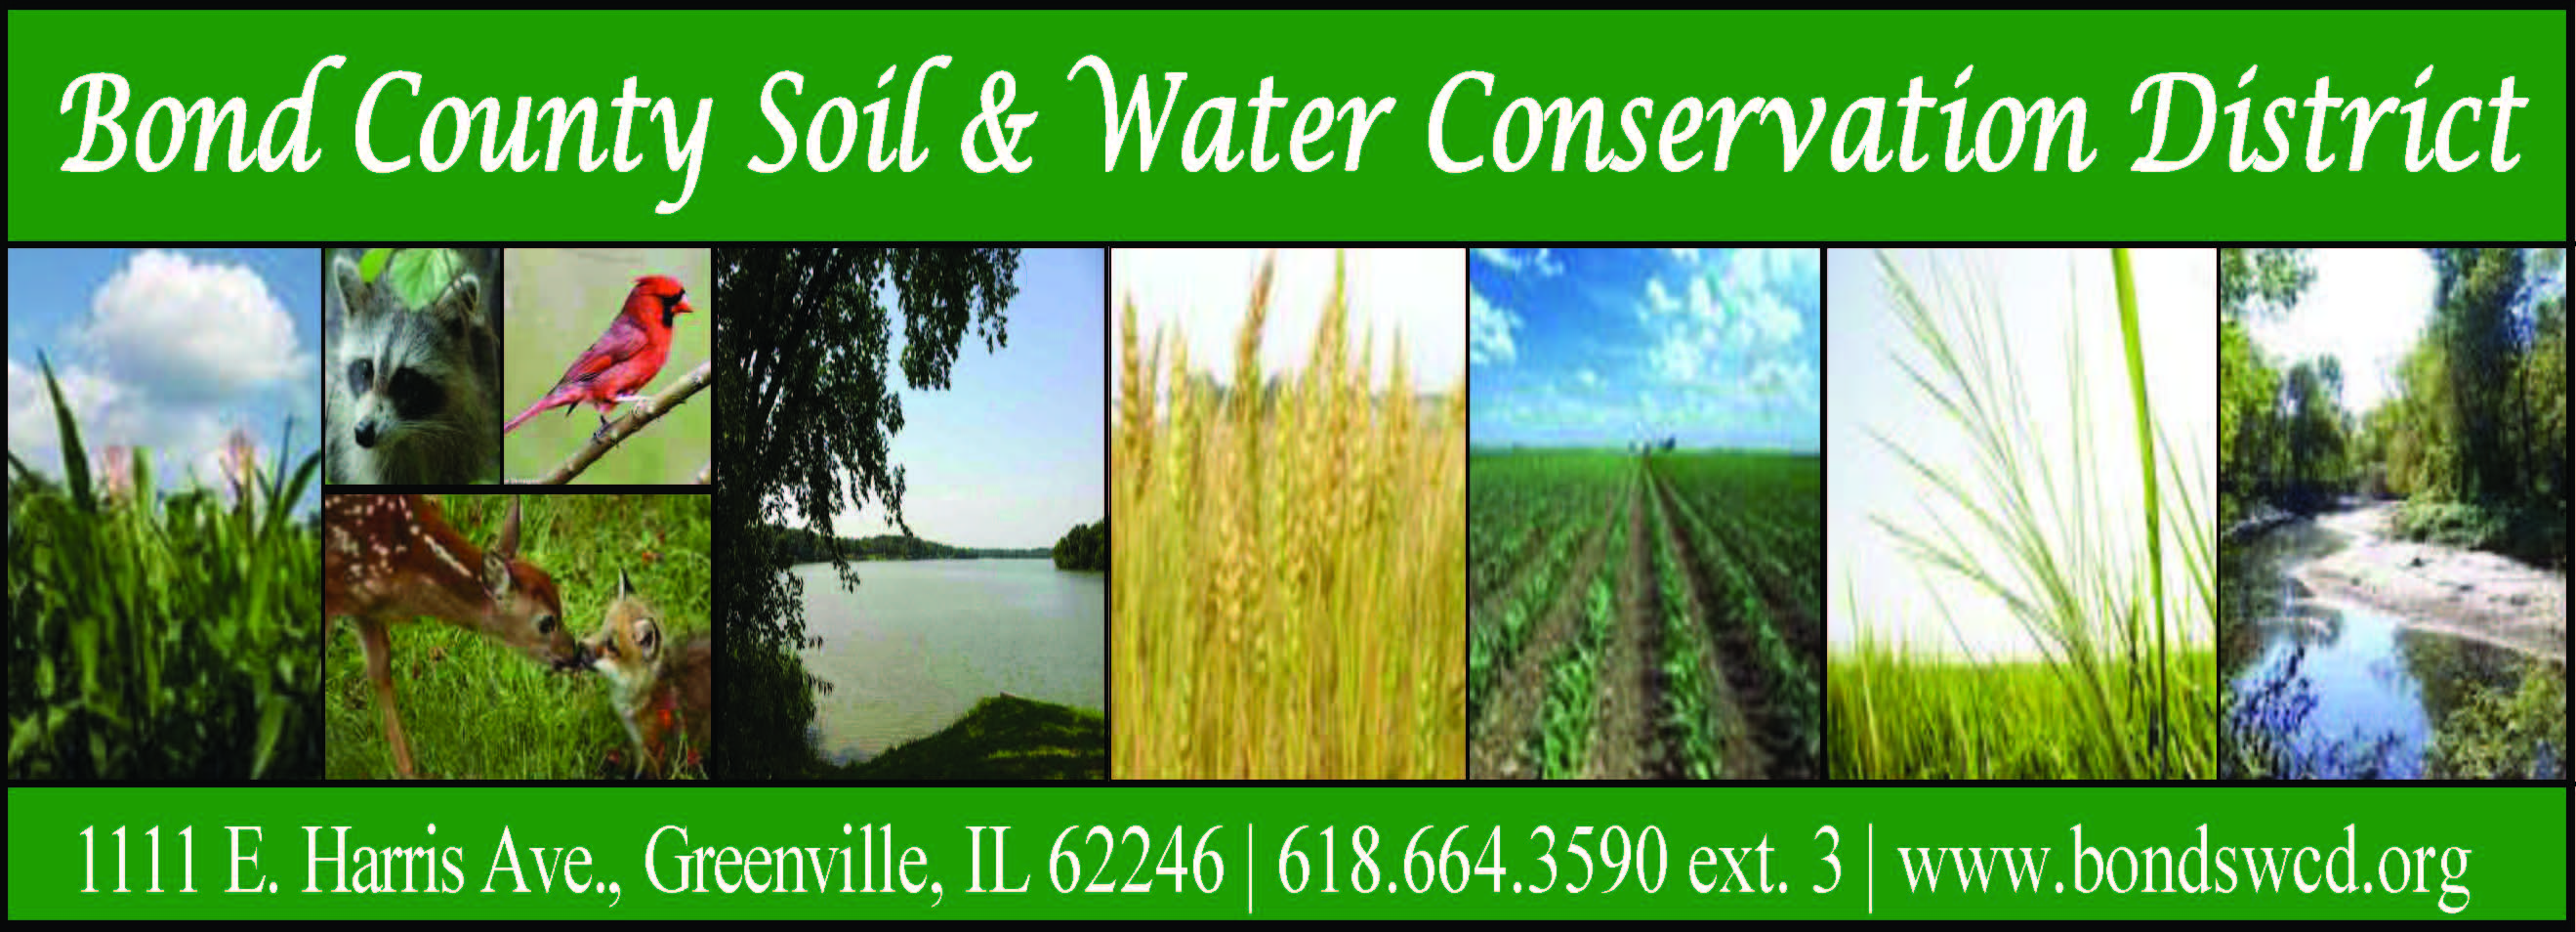 Bond County Soil and Water Conservation District